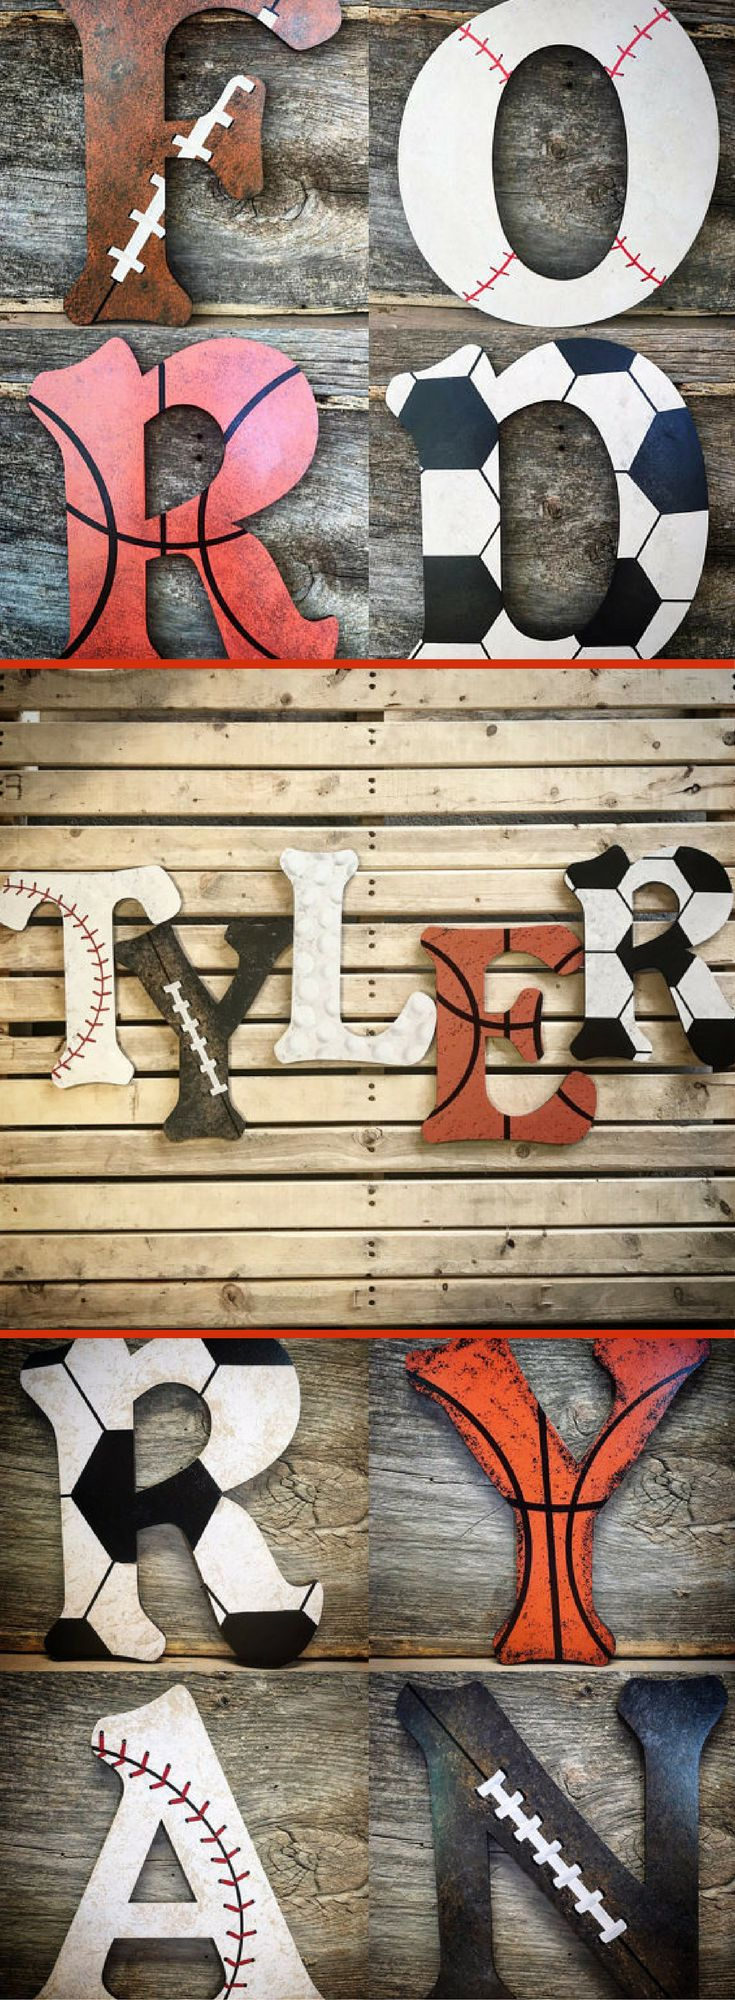 Looking for a unique way to personalized your son's sports room?  Look no further!  Love these one-of-a-kind sports themed letters.  Perfect nursery/boys home decor!  Nursery Decor-Sports Nursery Wood Wall Letters Decor-Baby Boy Nursery-Boys Room Decor-Basketball-Football-Baseball. #Sports #Basketball #Football #Baseball #Soccer #Affiliate